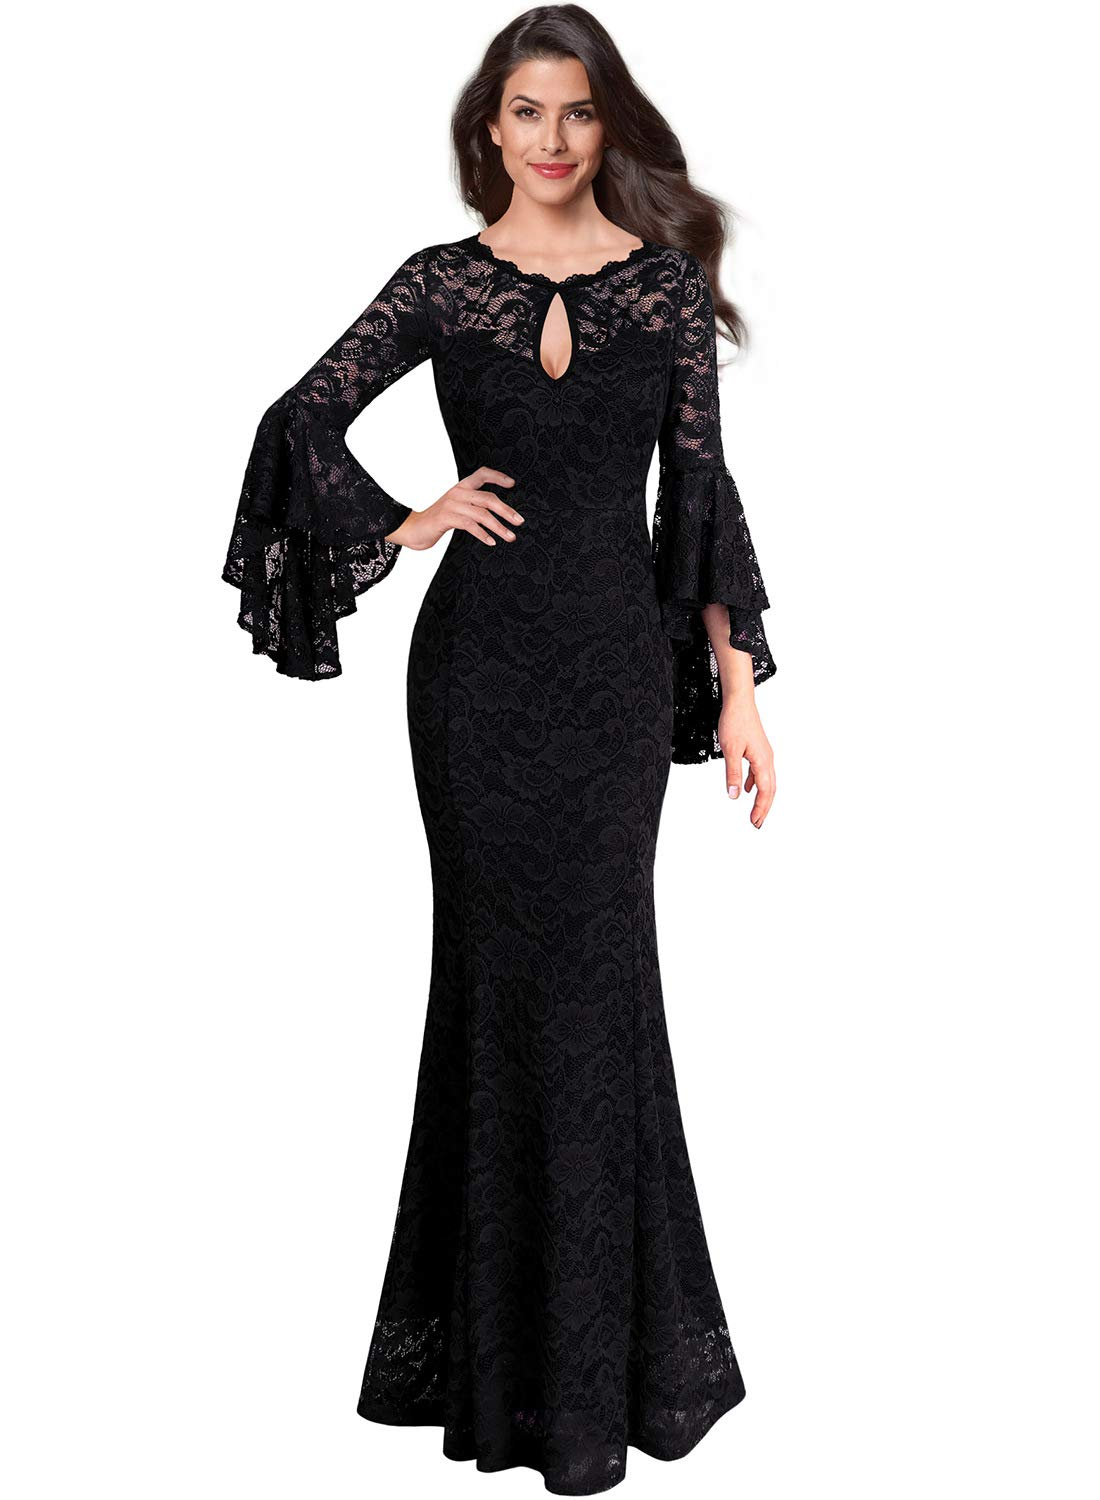 26a55231faf7 VFSHOW Womens Black Floral Lace Keyhole Front Ruffle Bell Sleeve Formal  Evening Wedding Maxi Dress 2376 BLK XS